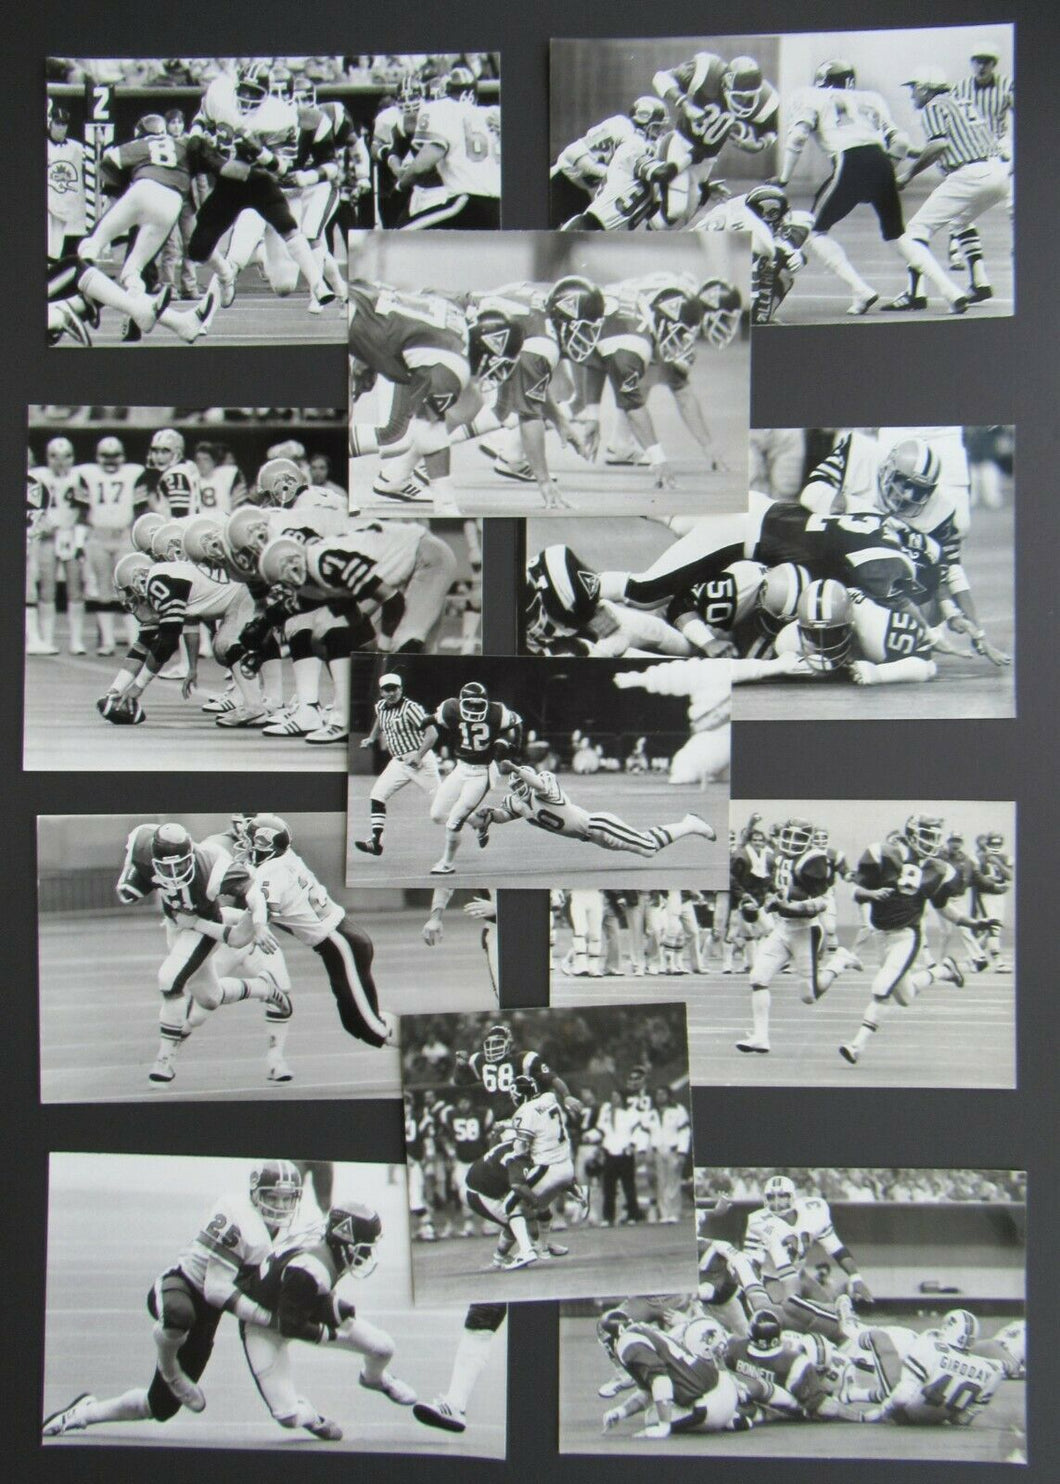 1980 Season Vintage CFL Montreal Alouettes Denis Brodeur Press Photo Lot (11)